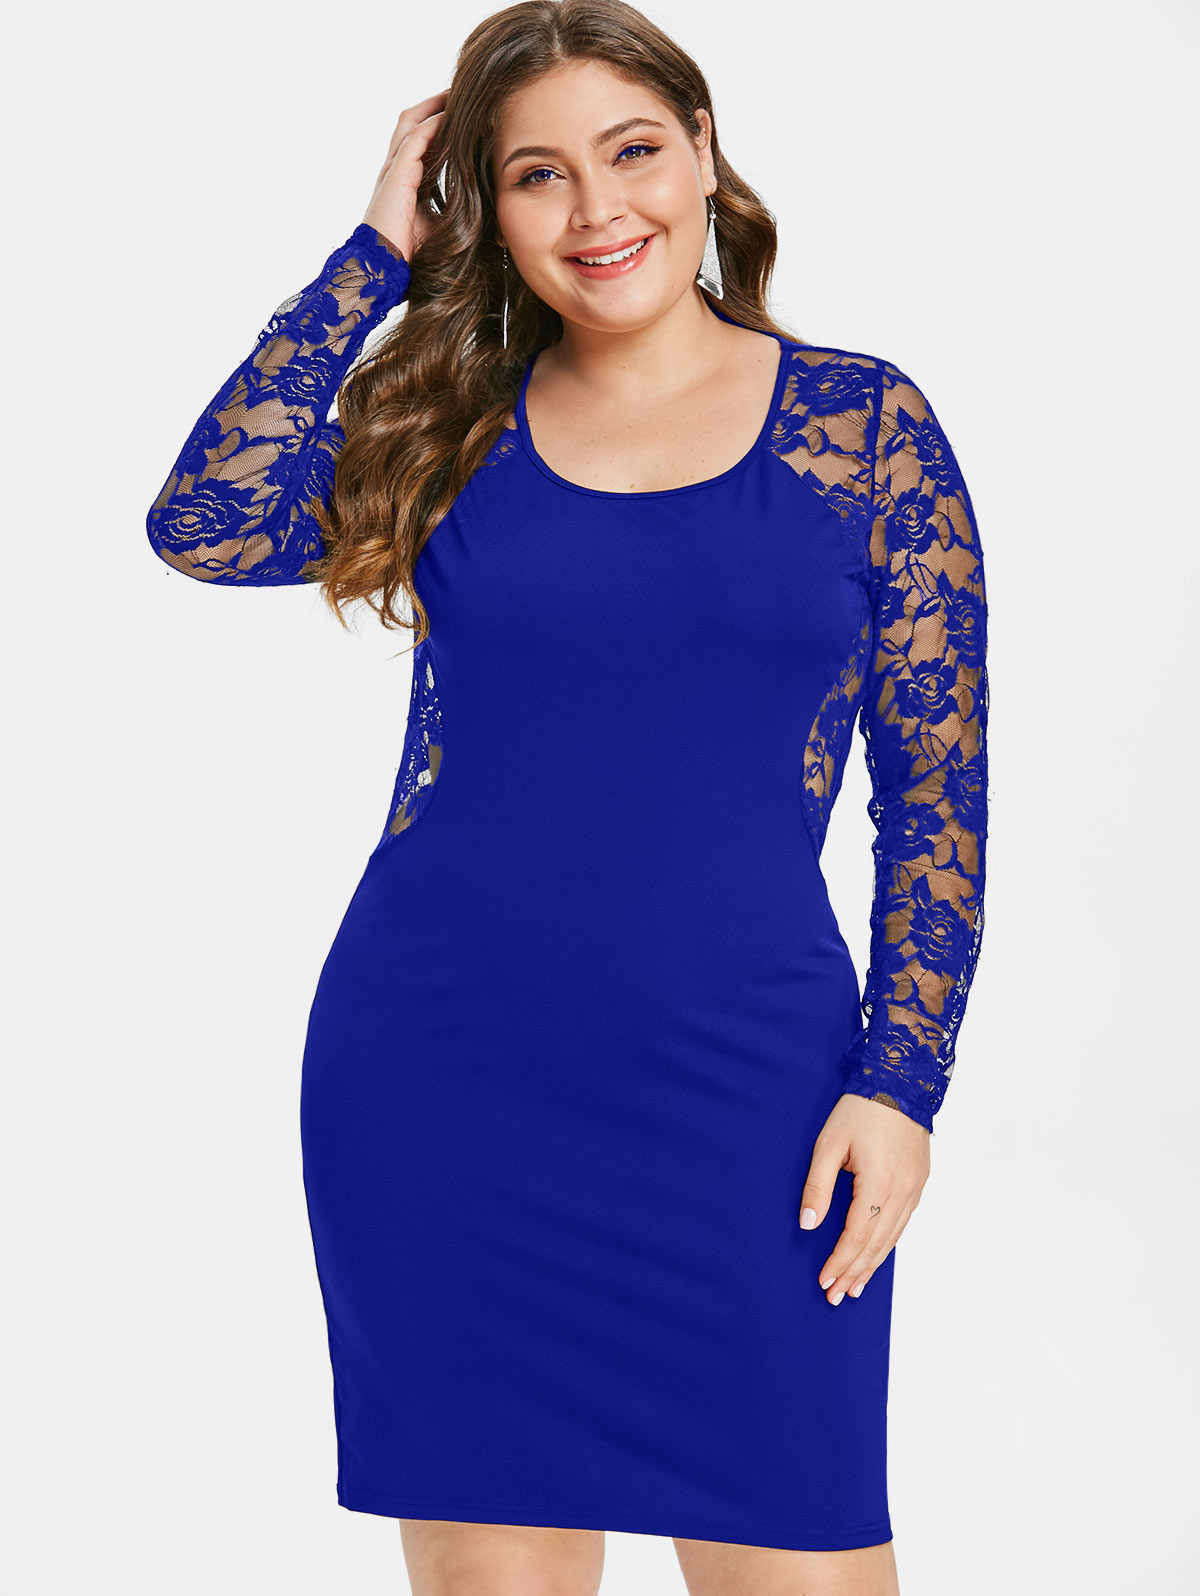 d9b91ceee6fe6 Wipalo Plus Size 5XL Sheer Floral Lace Insert Bodycon Dress O Neck Long  Sleeve See Through